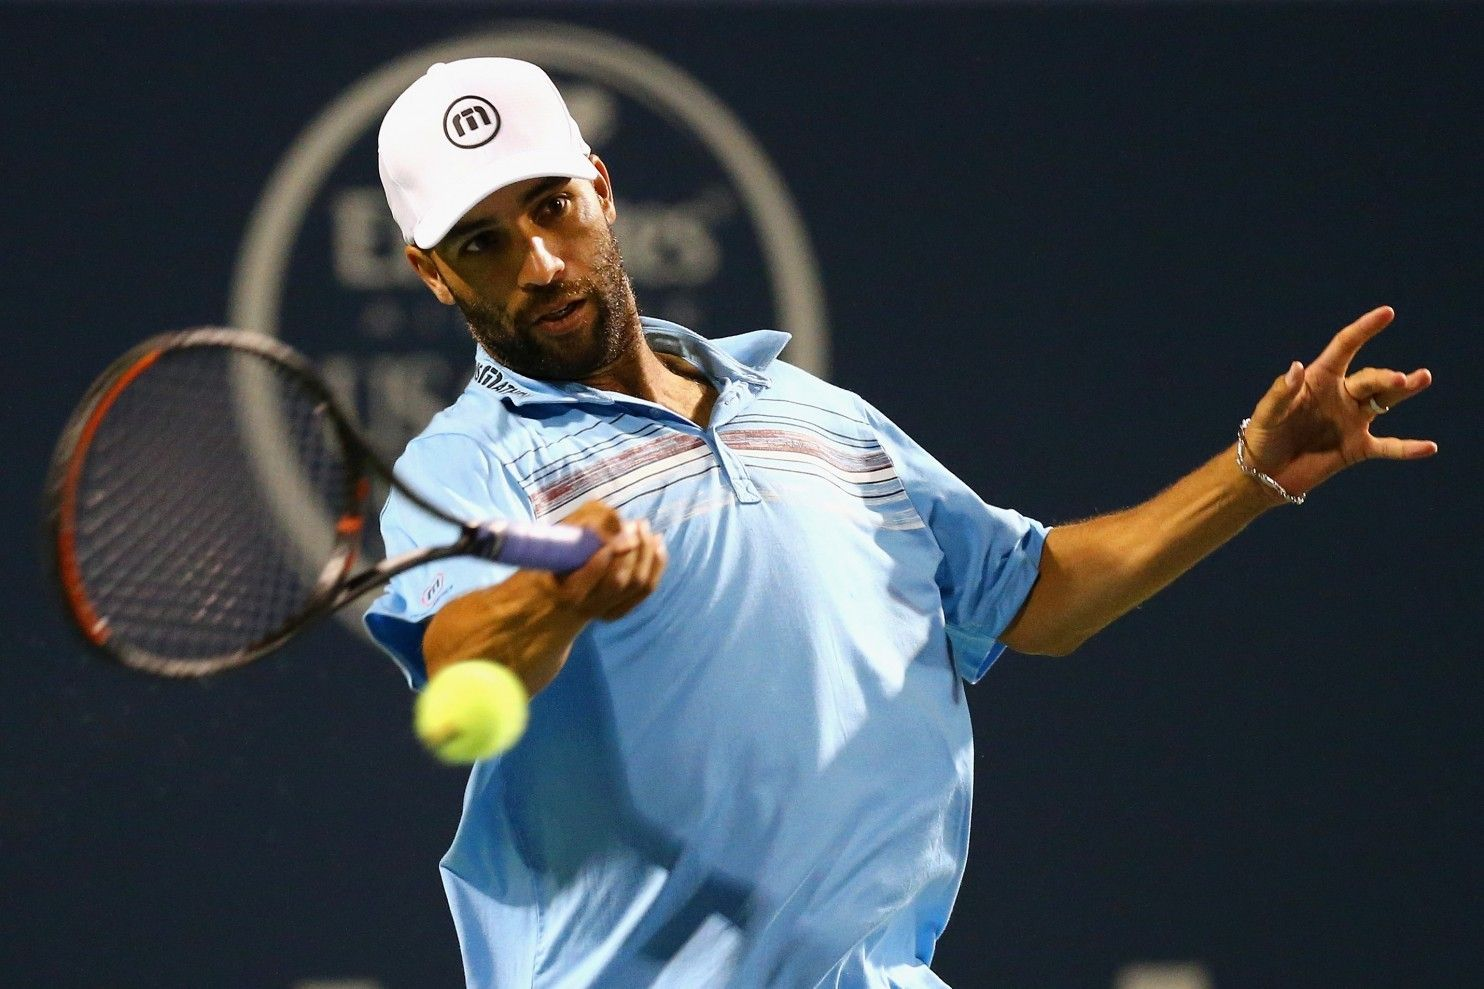 Nypd Officers Tackle Retired Tennis Star James Blake After Mistaking Him For Suspect James Blake Tennis Stars Tennis